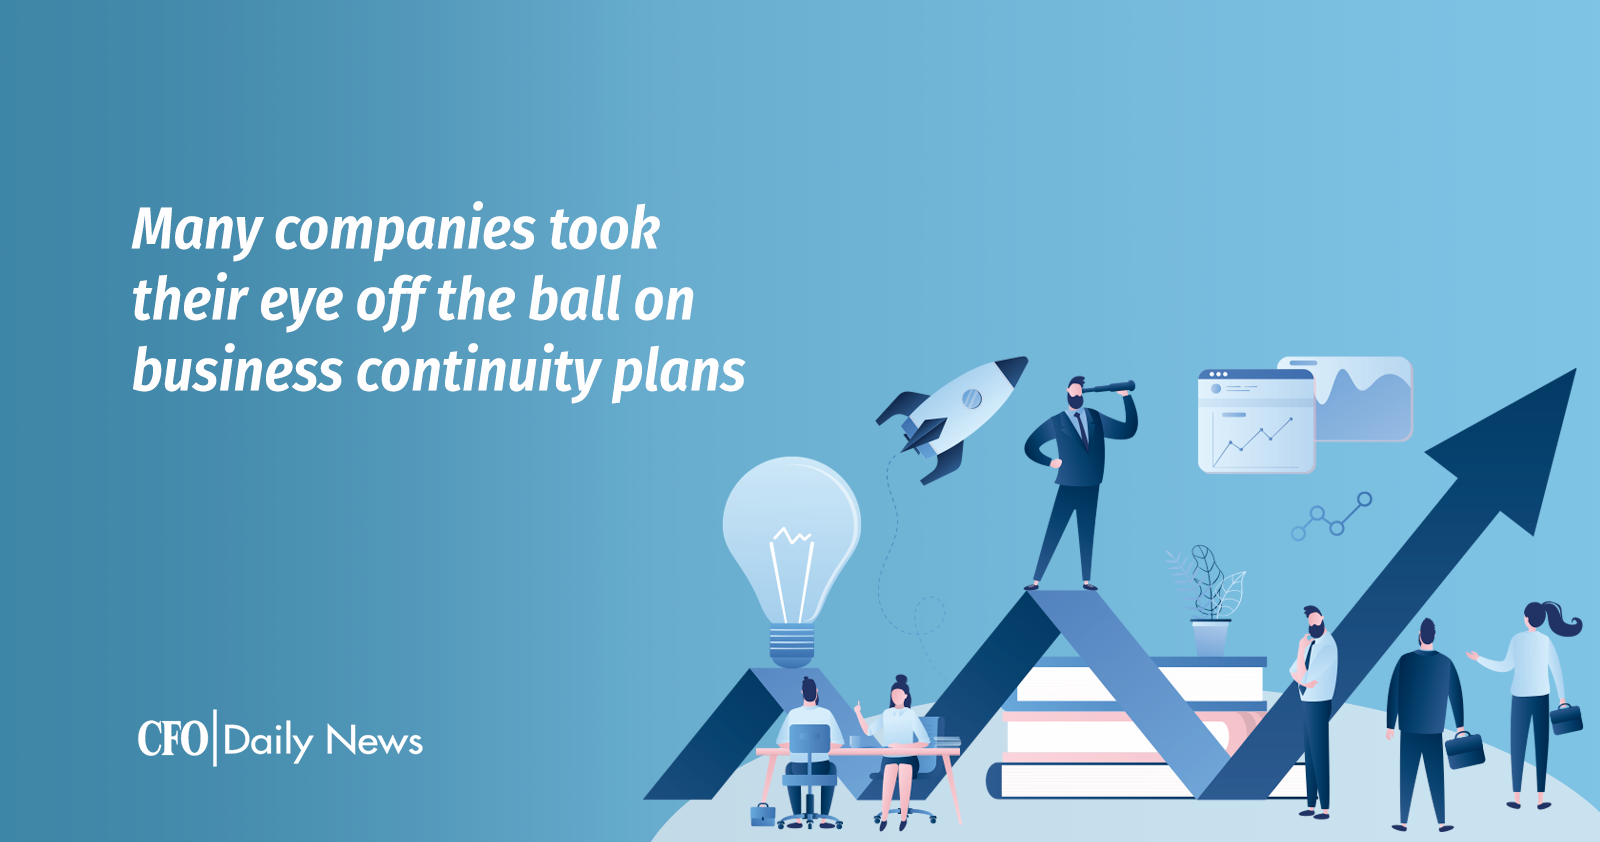 many companies took their eye off the ball on business continuity plans